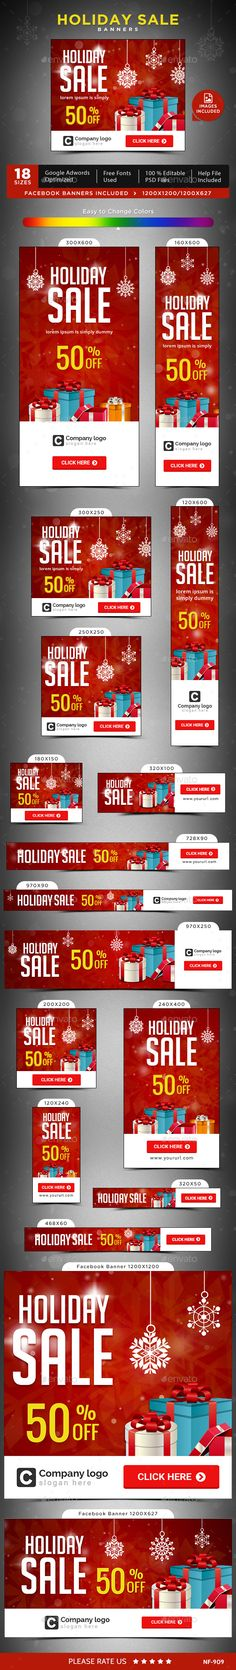 Holiday Sale Web Banners Templates PSD #design #ads Download…